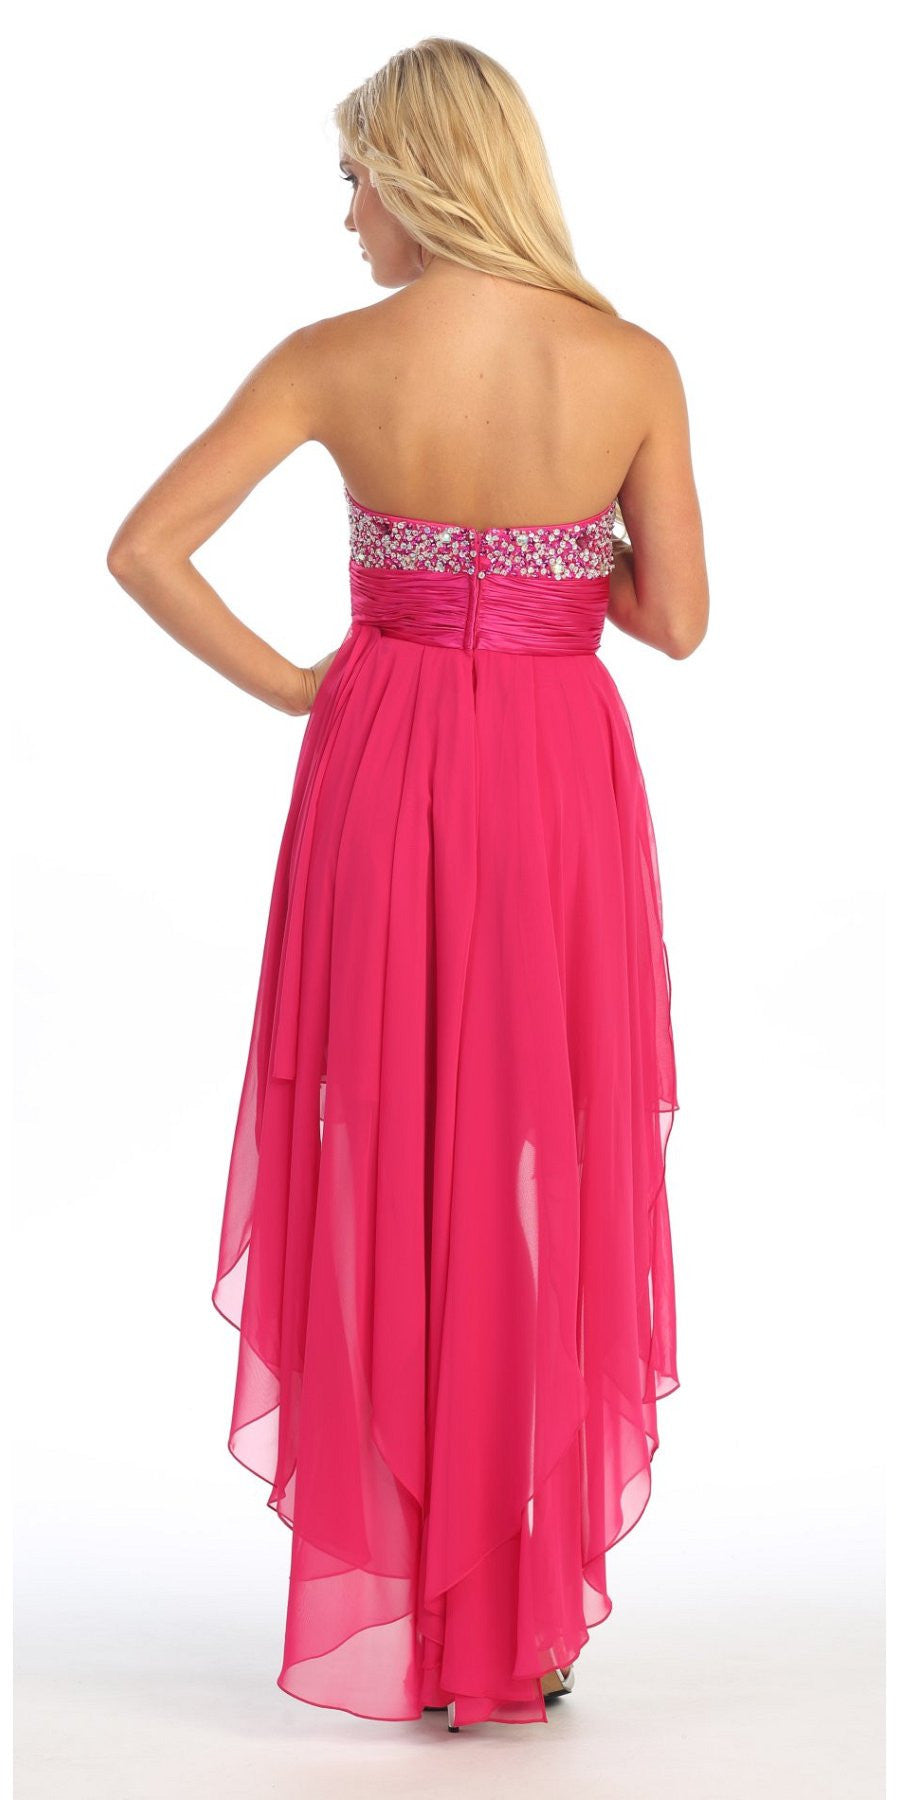 High Low Homecoming Fuchsia Dress Beads Sequins Asymmetrical Skirt